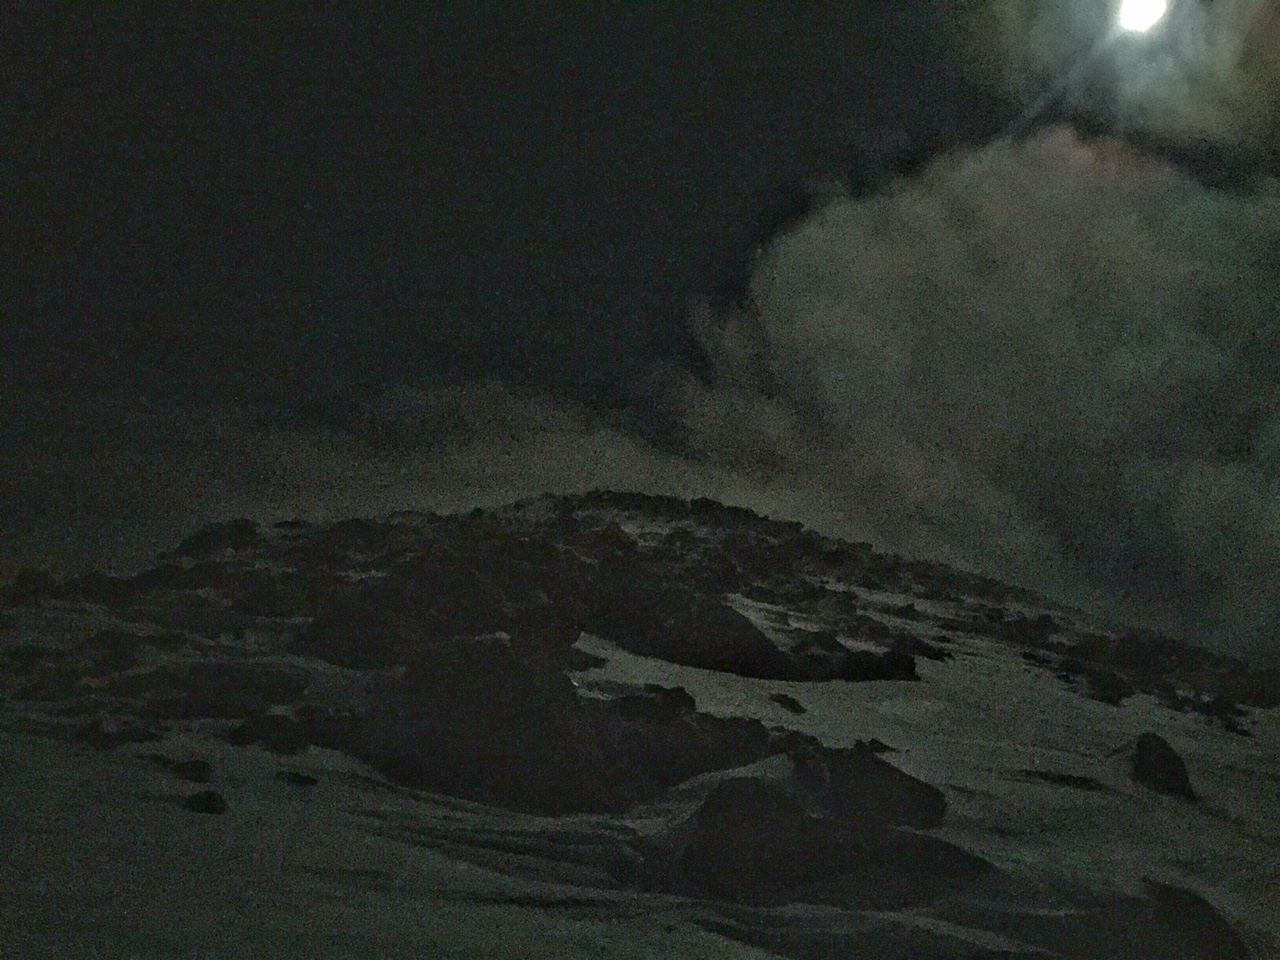 Full moon ascent.